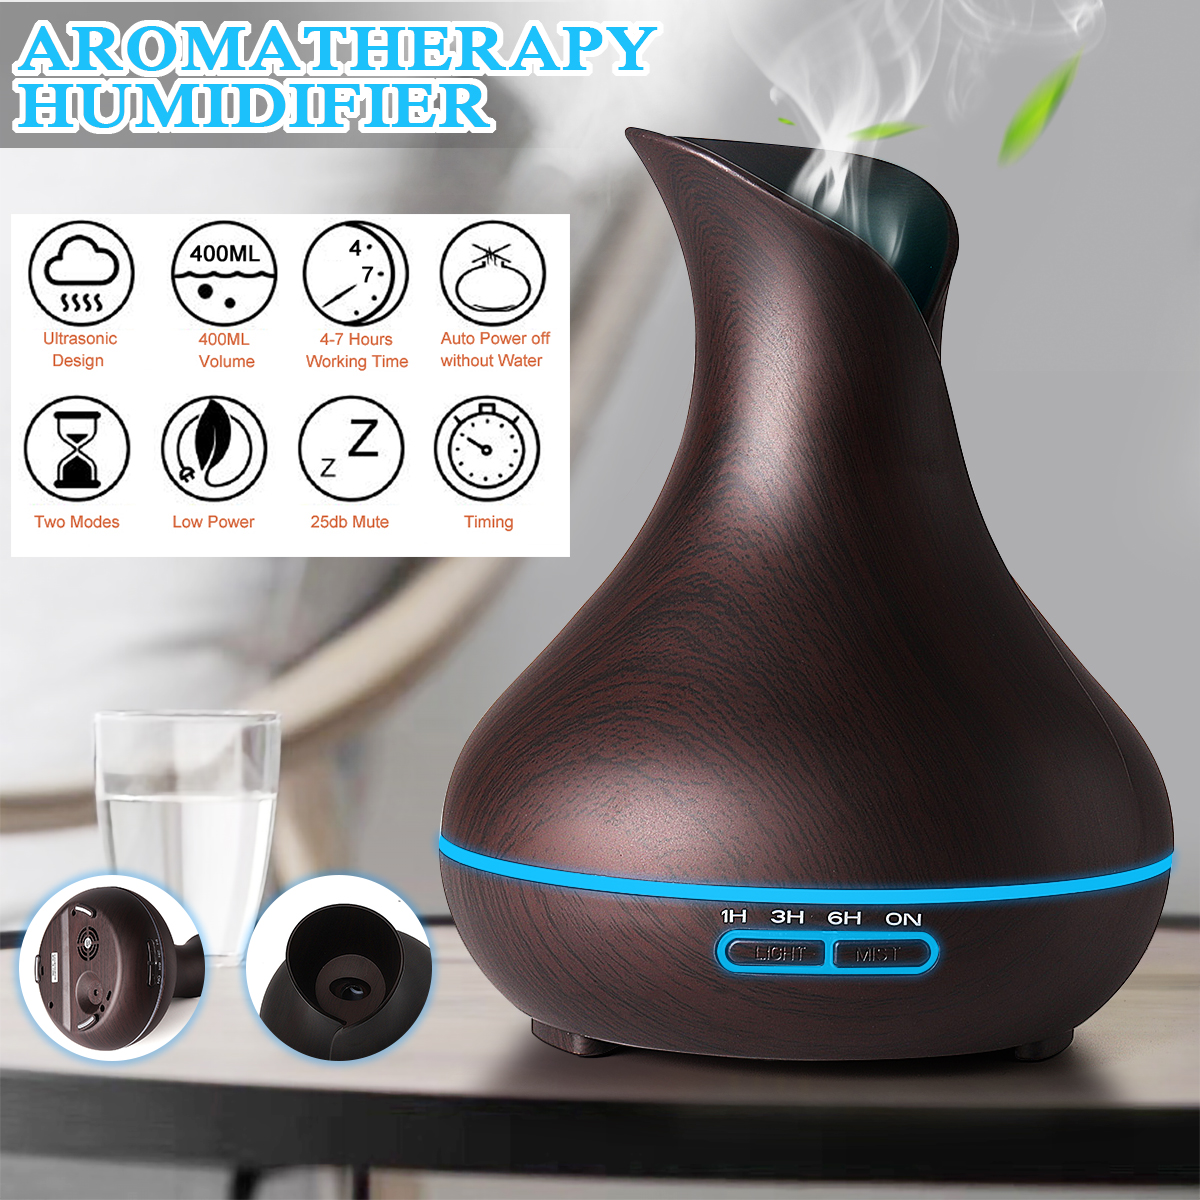 Aroma Diffuser for Essential Oil 13.5 oz (400ml) - Air Humidifier Quiet Ultrasonic Technology 7 LED Light Settings For A Relaxing Atmosphere Improved Sleeping And Breathing Skin Li